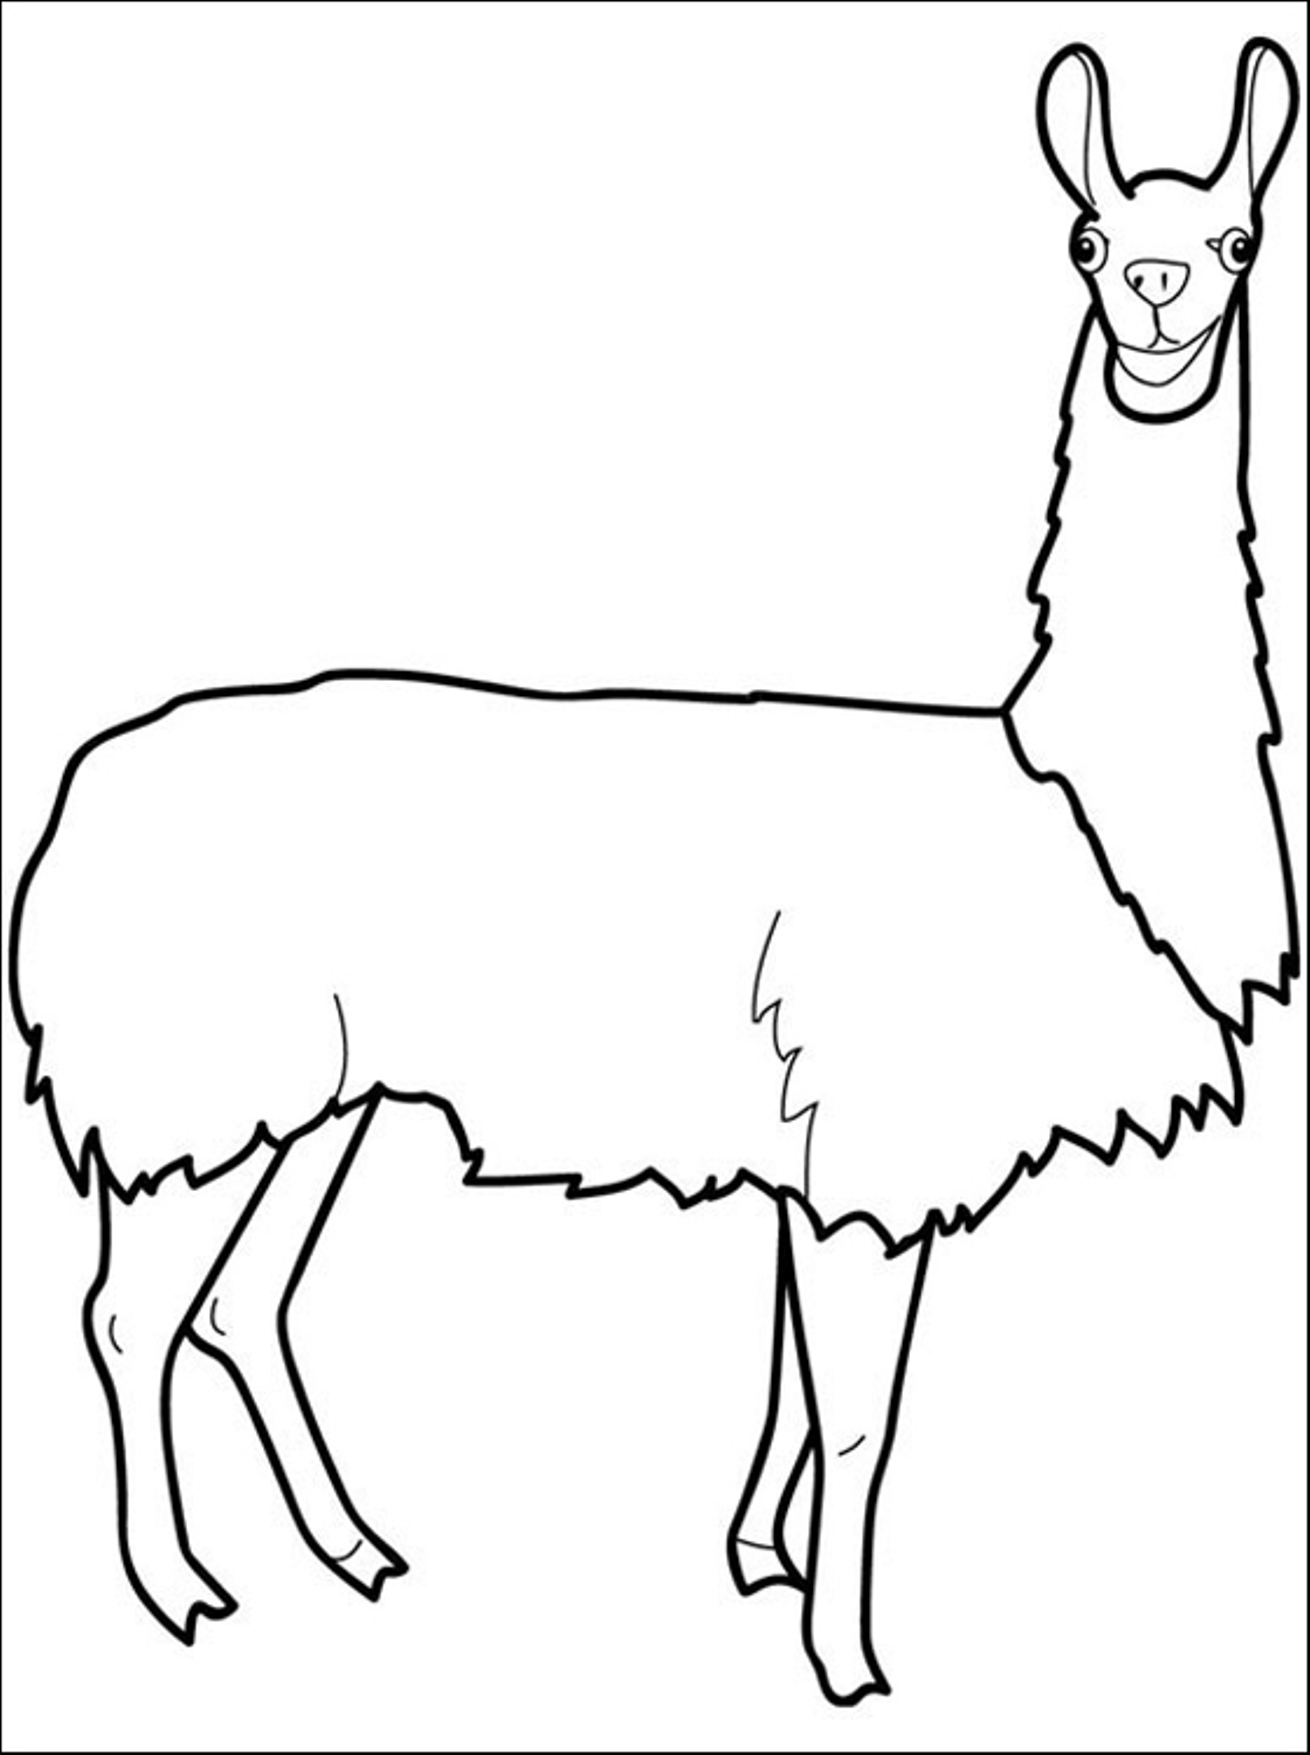 Llama coloring pages to download